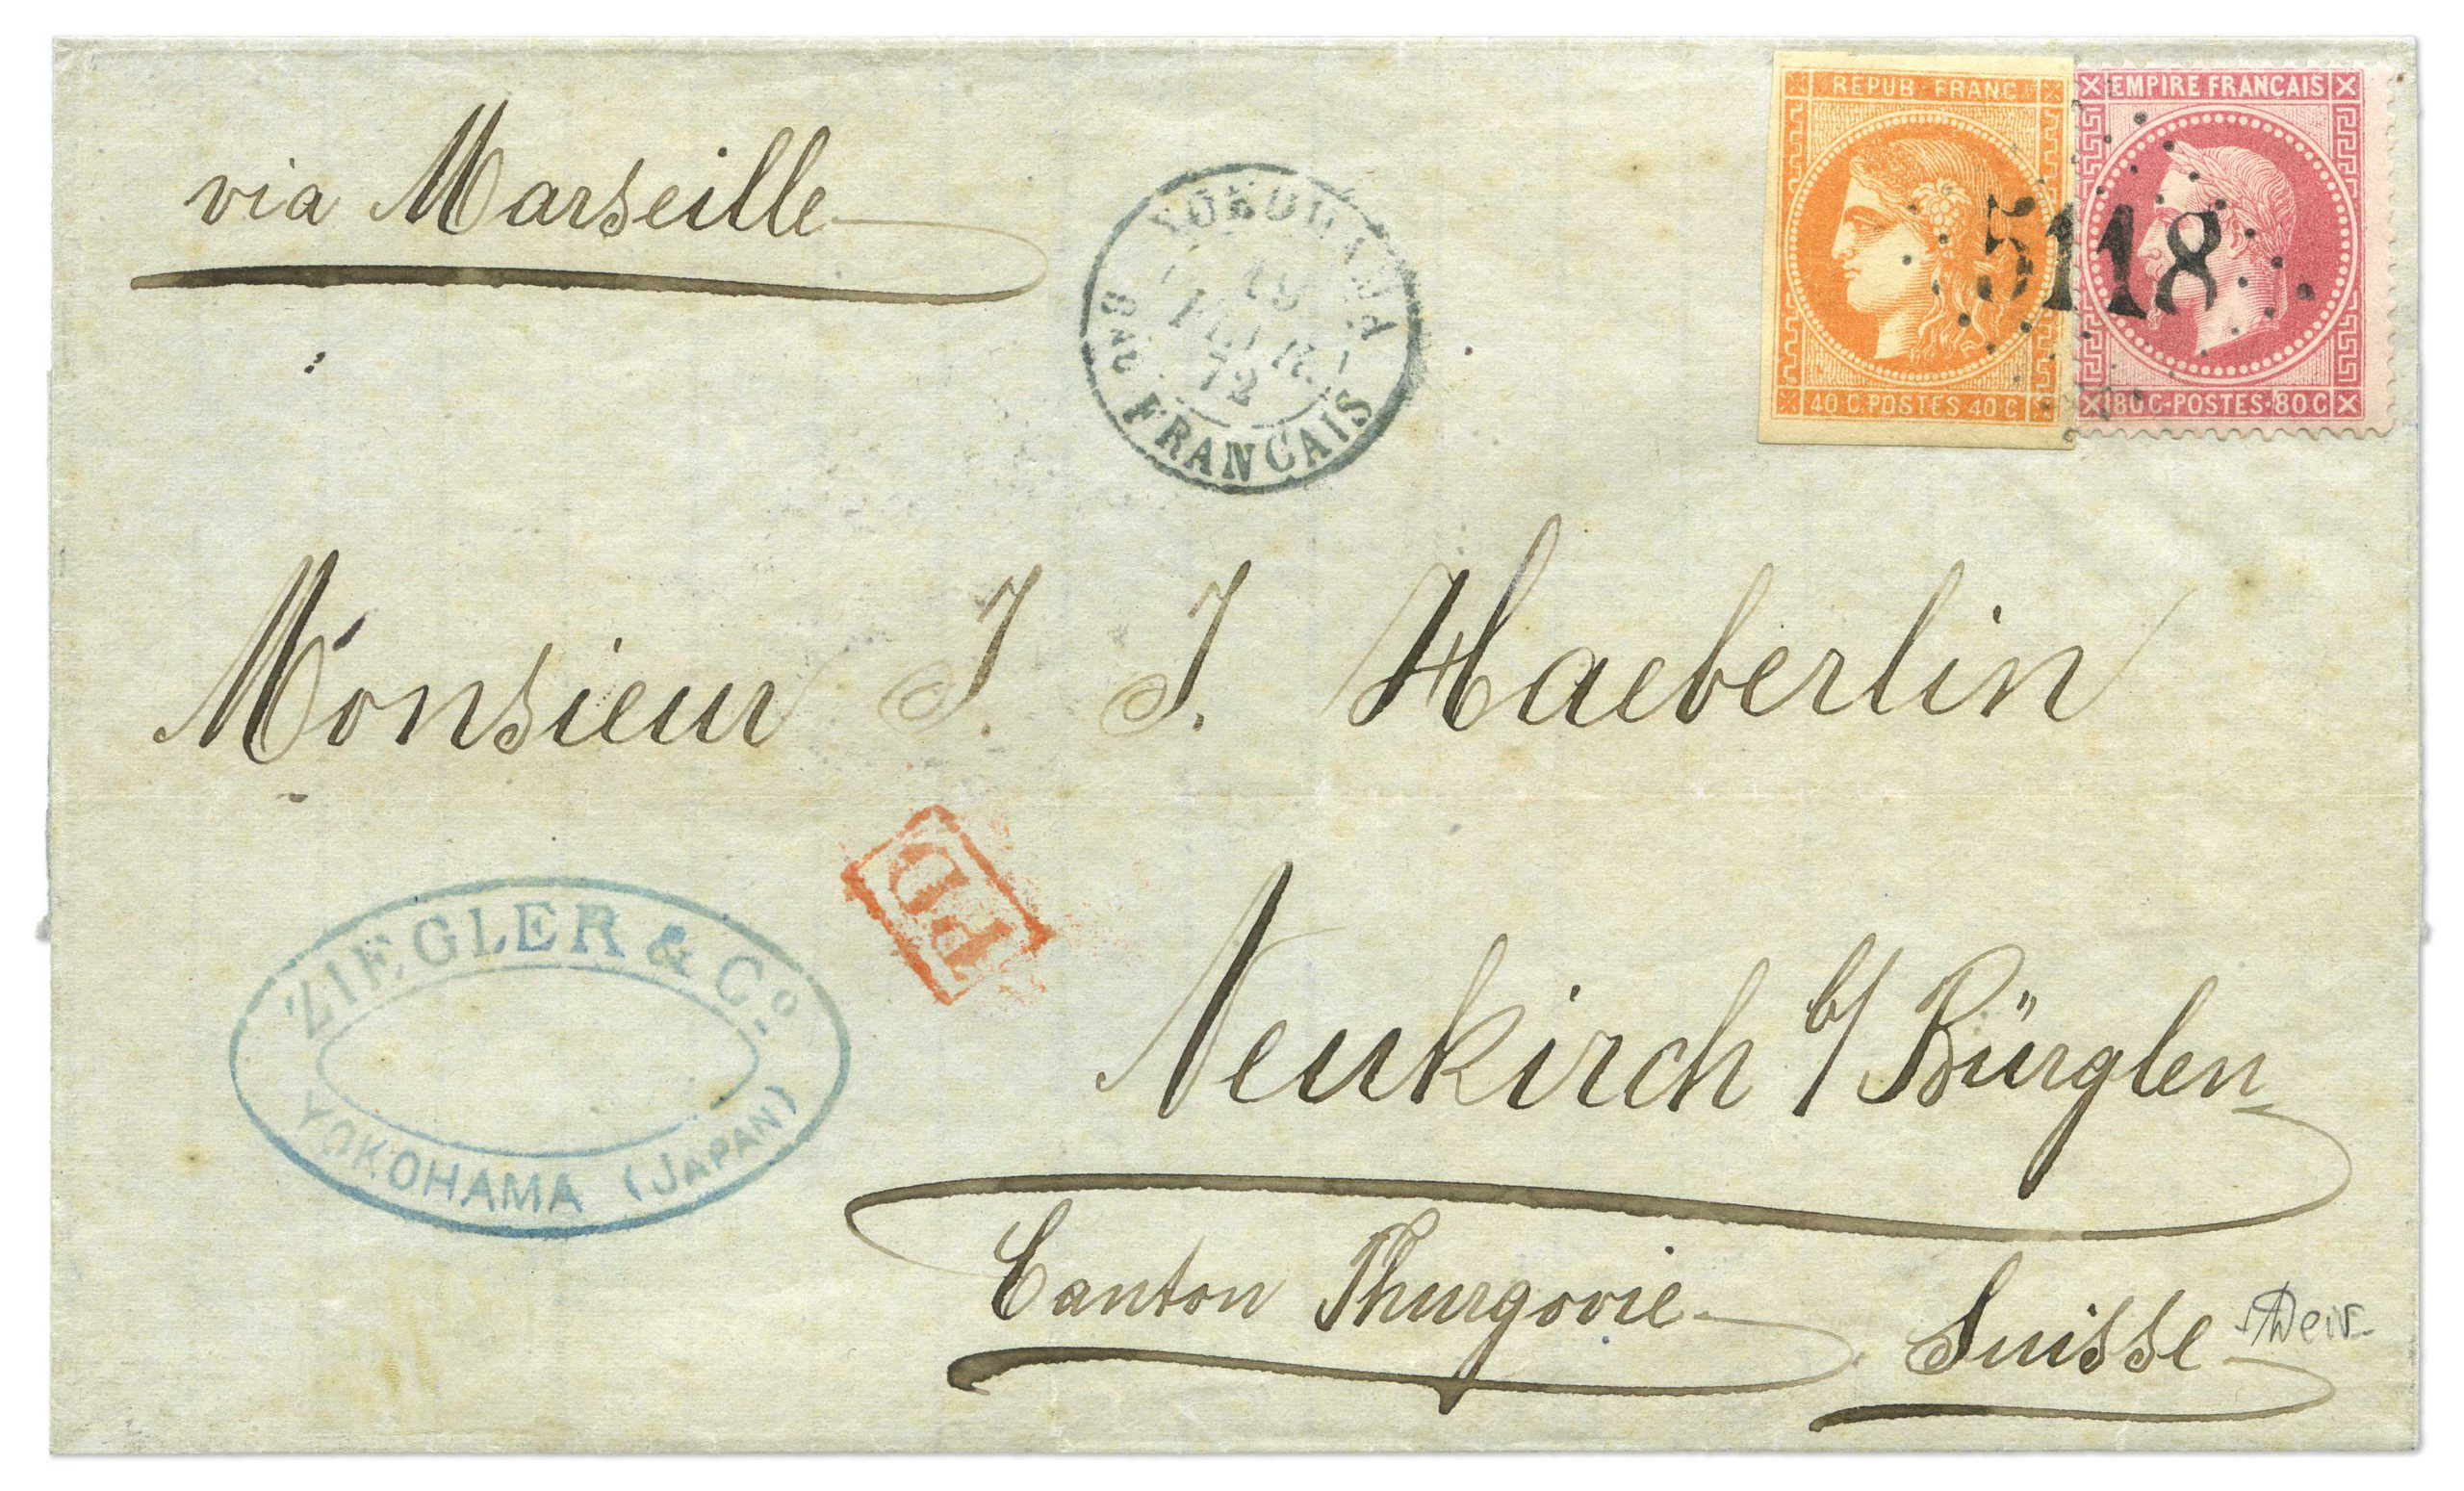 1876 cover with the extremely rare usage of the imperforate 'Bordeaux' 40c in combination with an Empire Laureated' 80 tied by the '5118' numeral which was the lozenaged